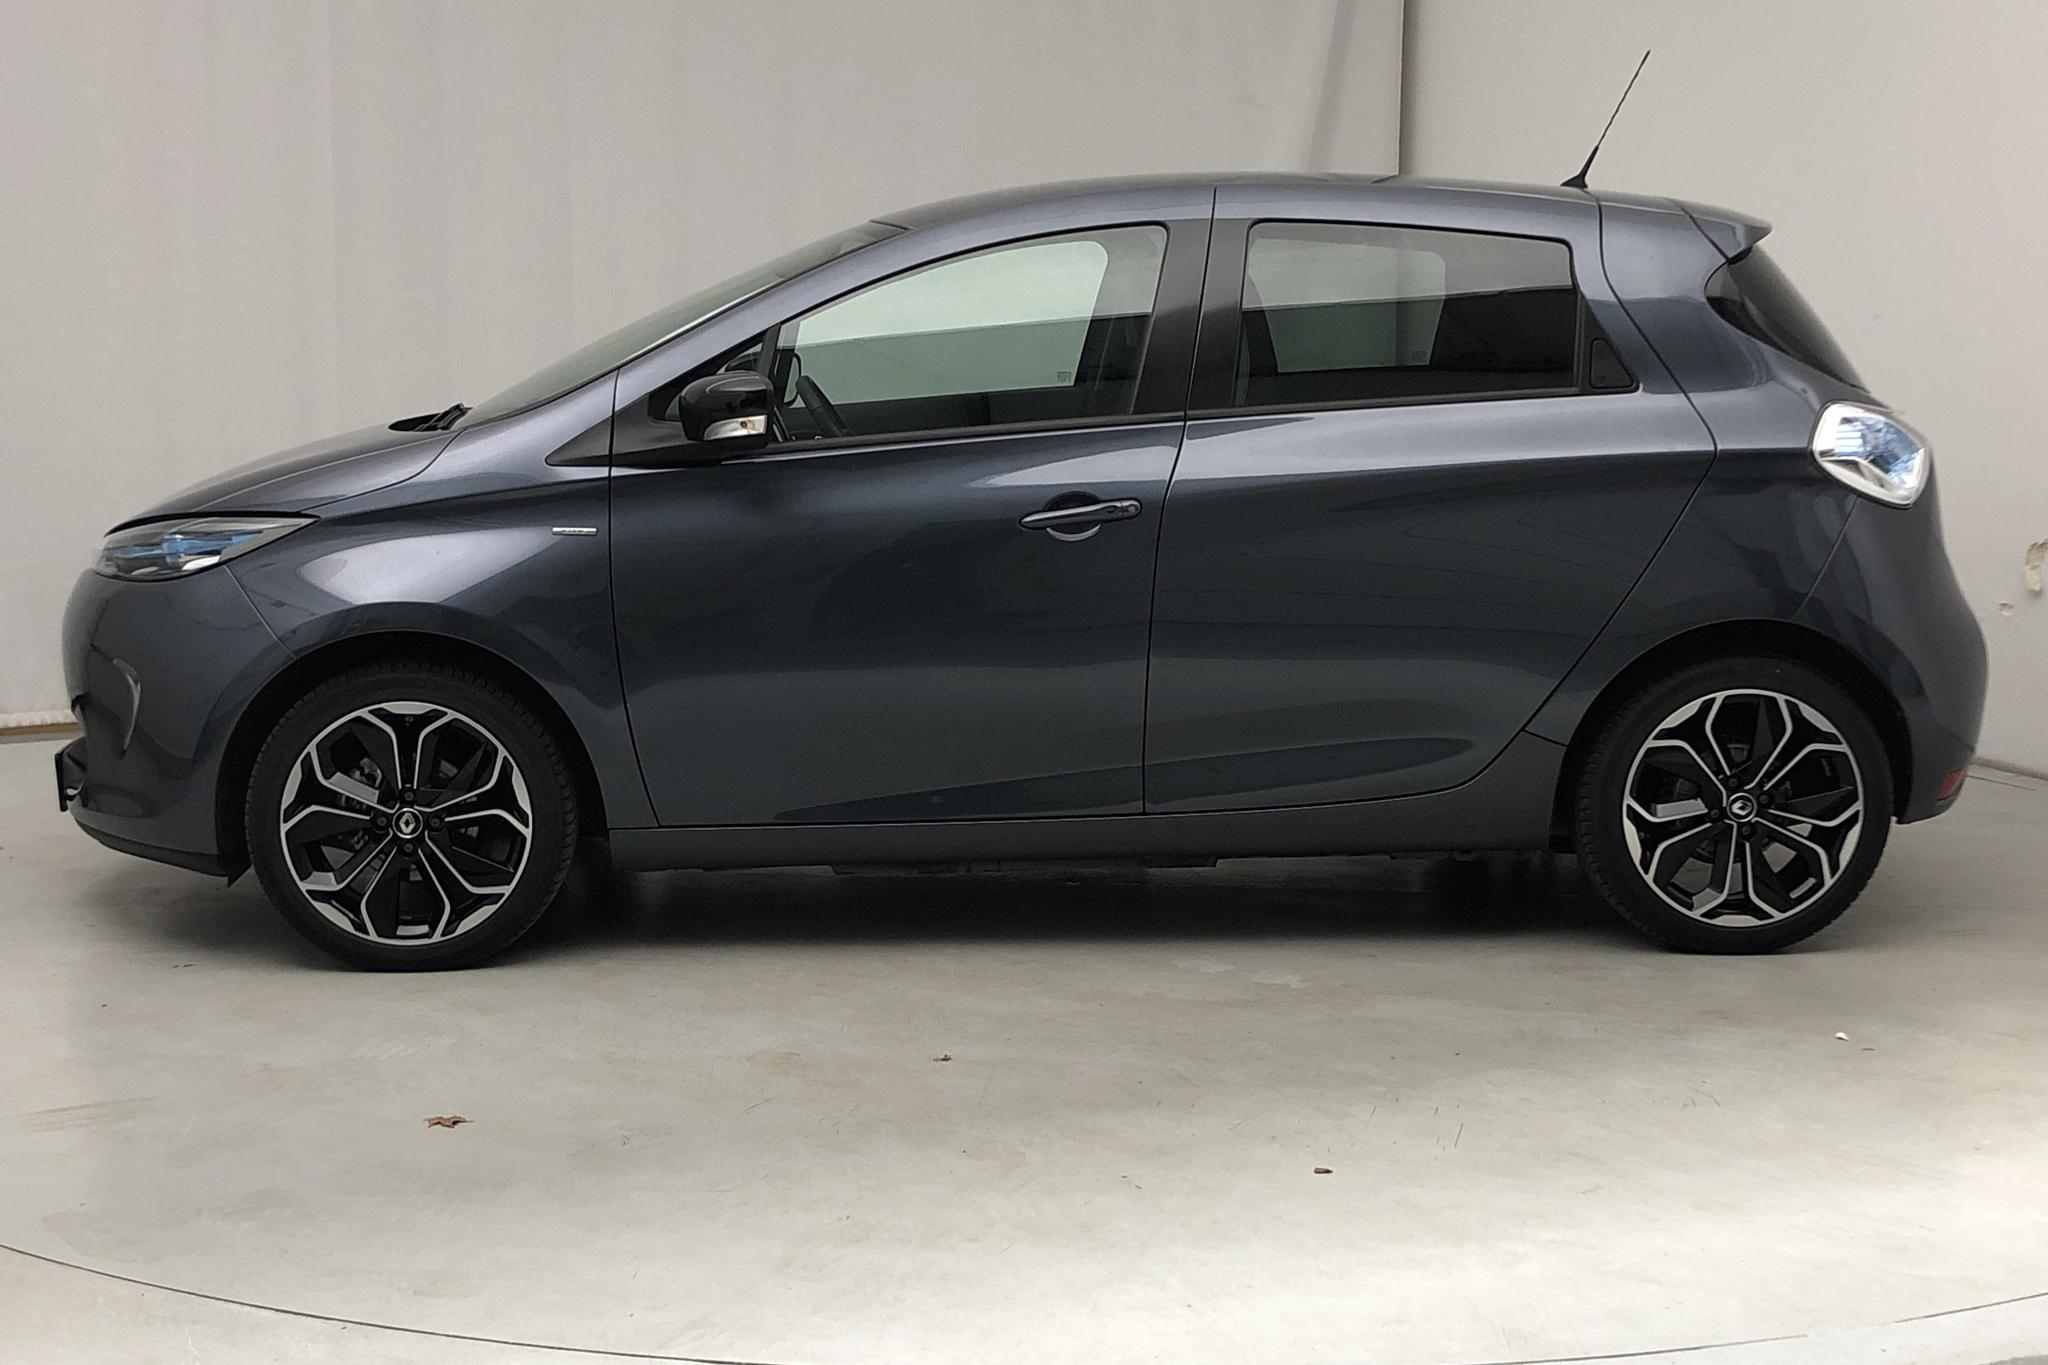 Renault Zoe 41 kWh R110 (108hk) - 12 230 km - Automatic - gray - 2019